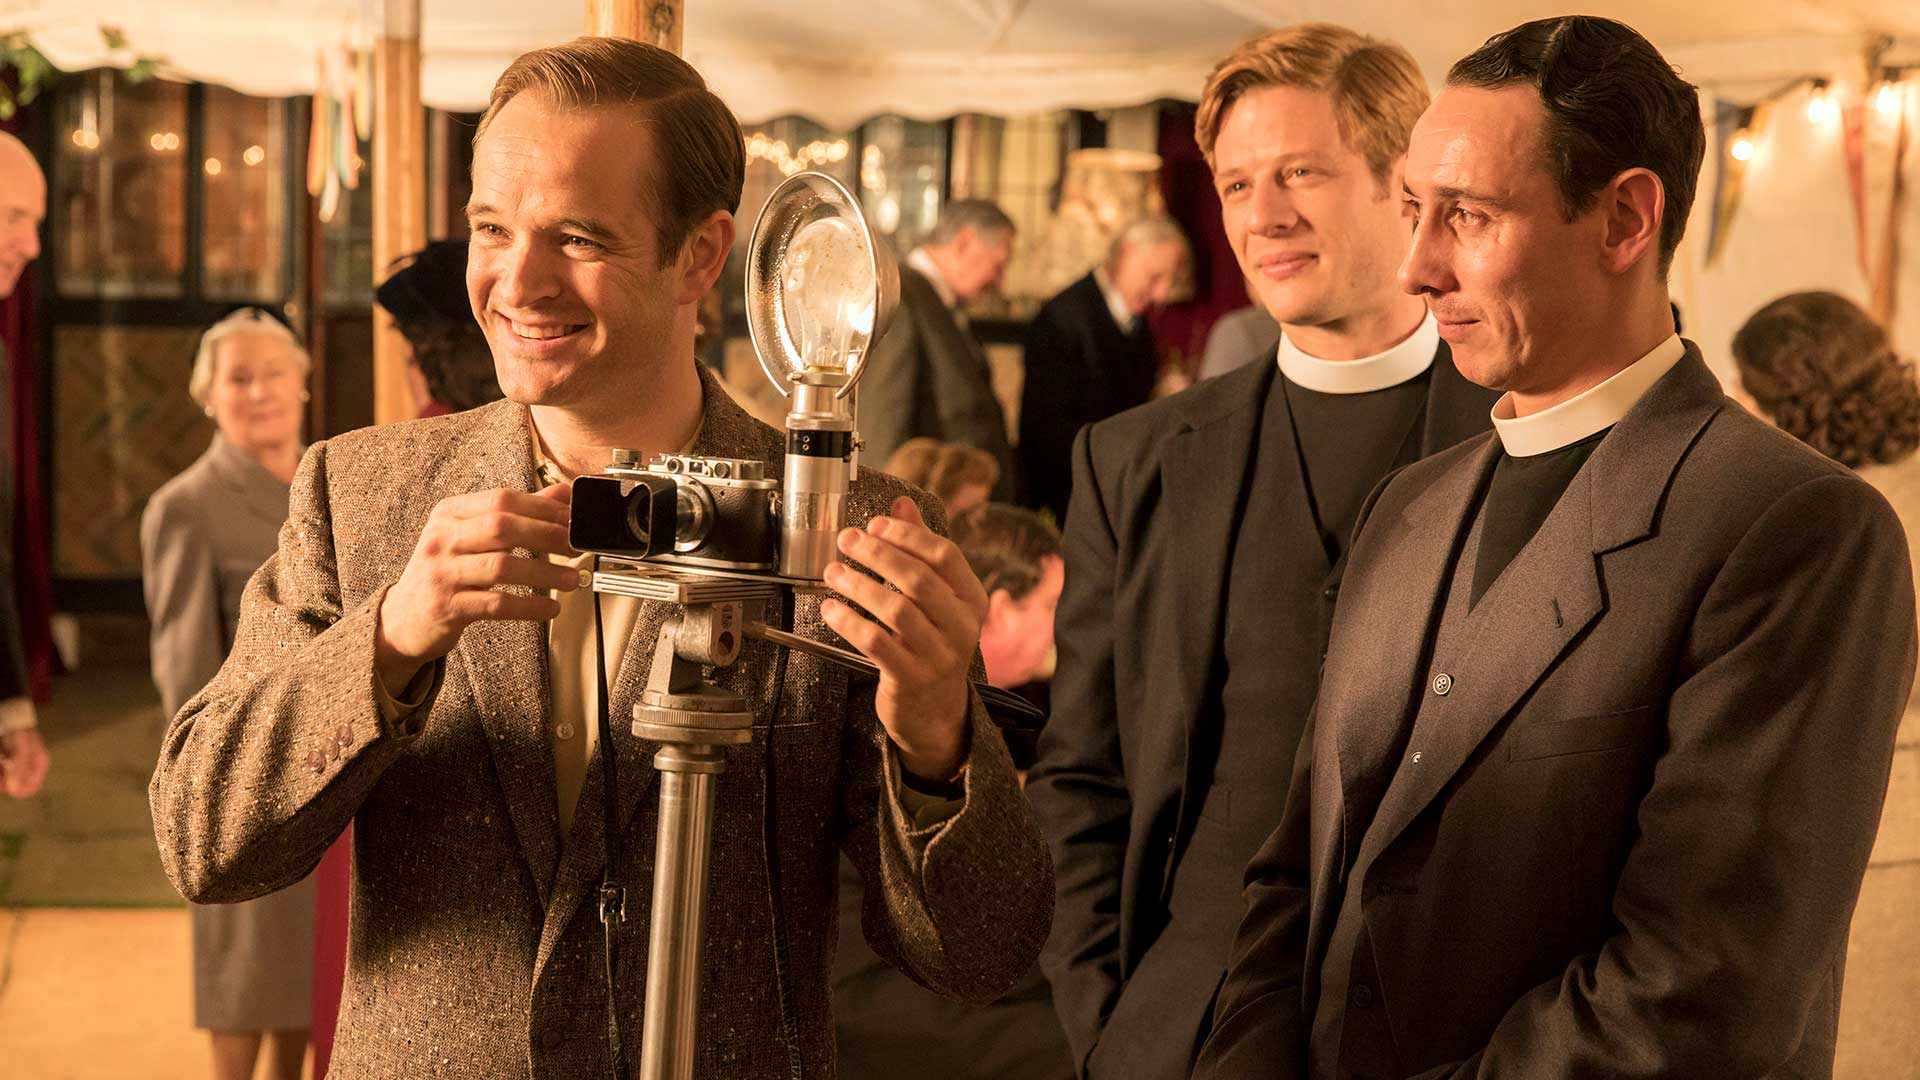 Pictured from left to right: Oliver Dimsdale as Daniel Marlowe, James Norton as Sidney Chambers, and Al Weaver as Leonard